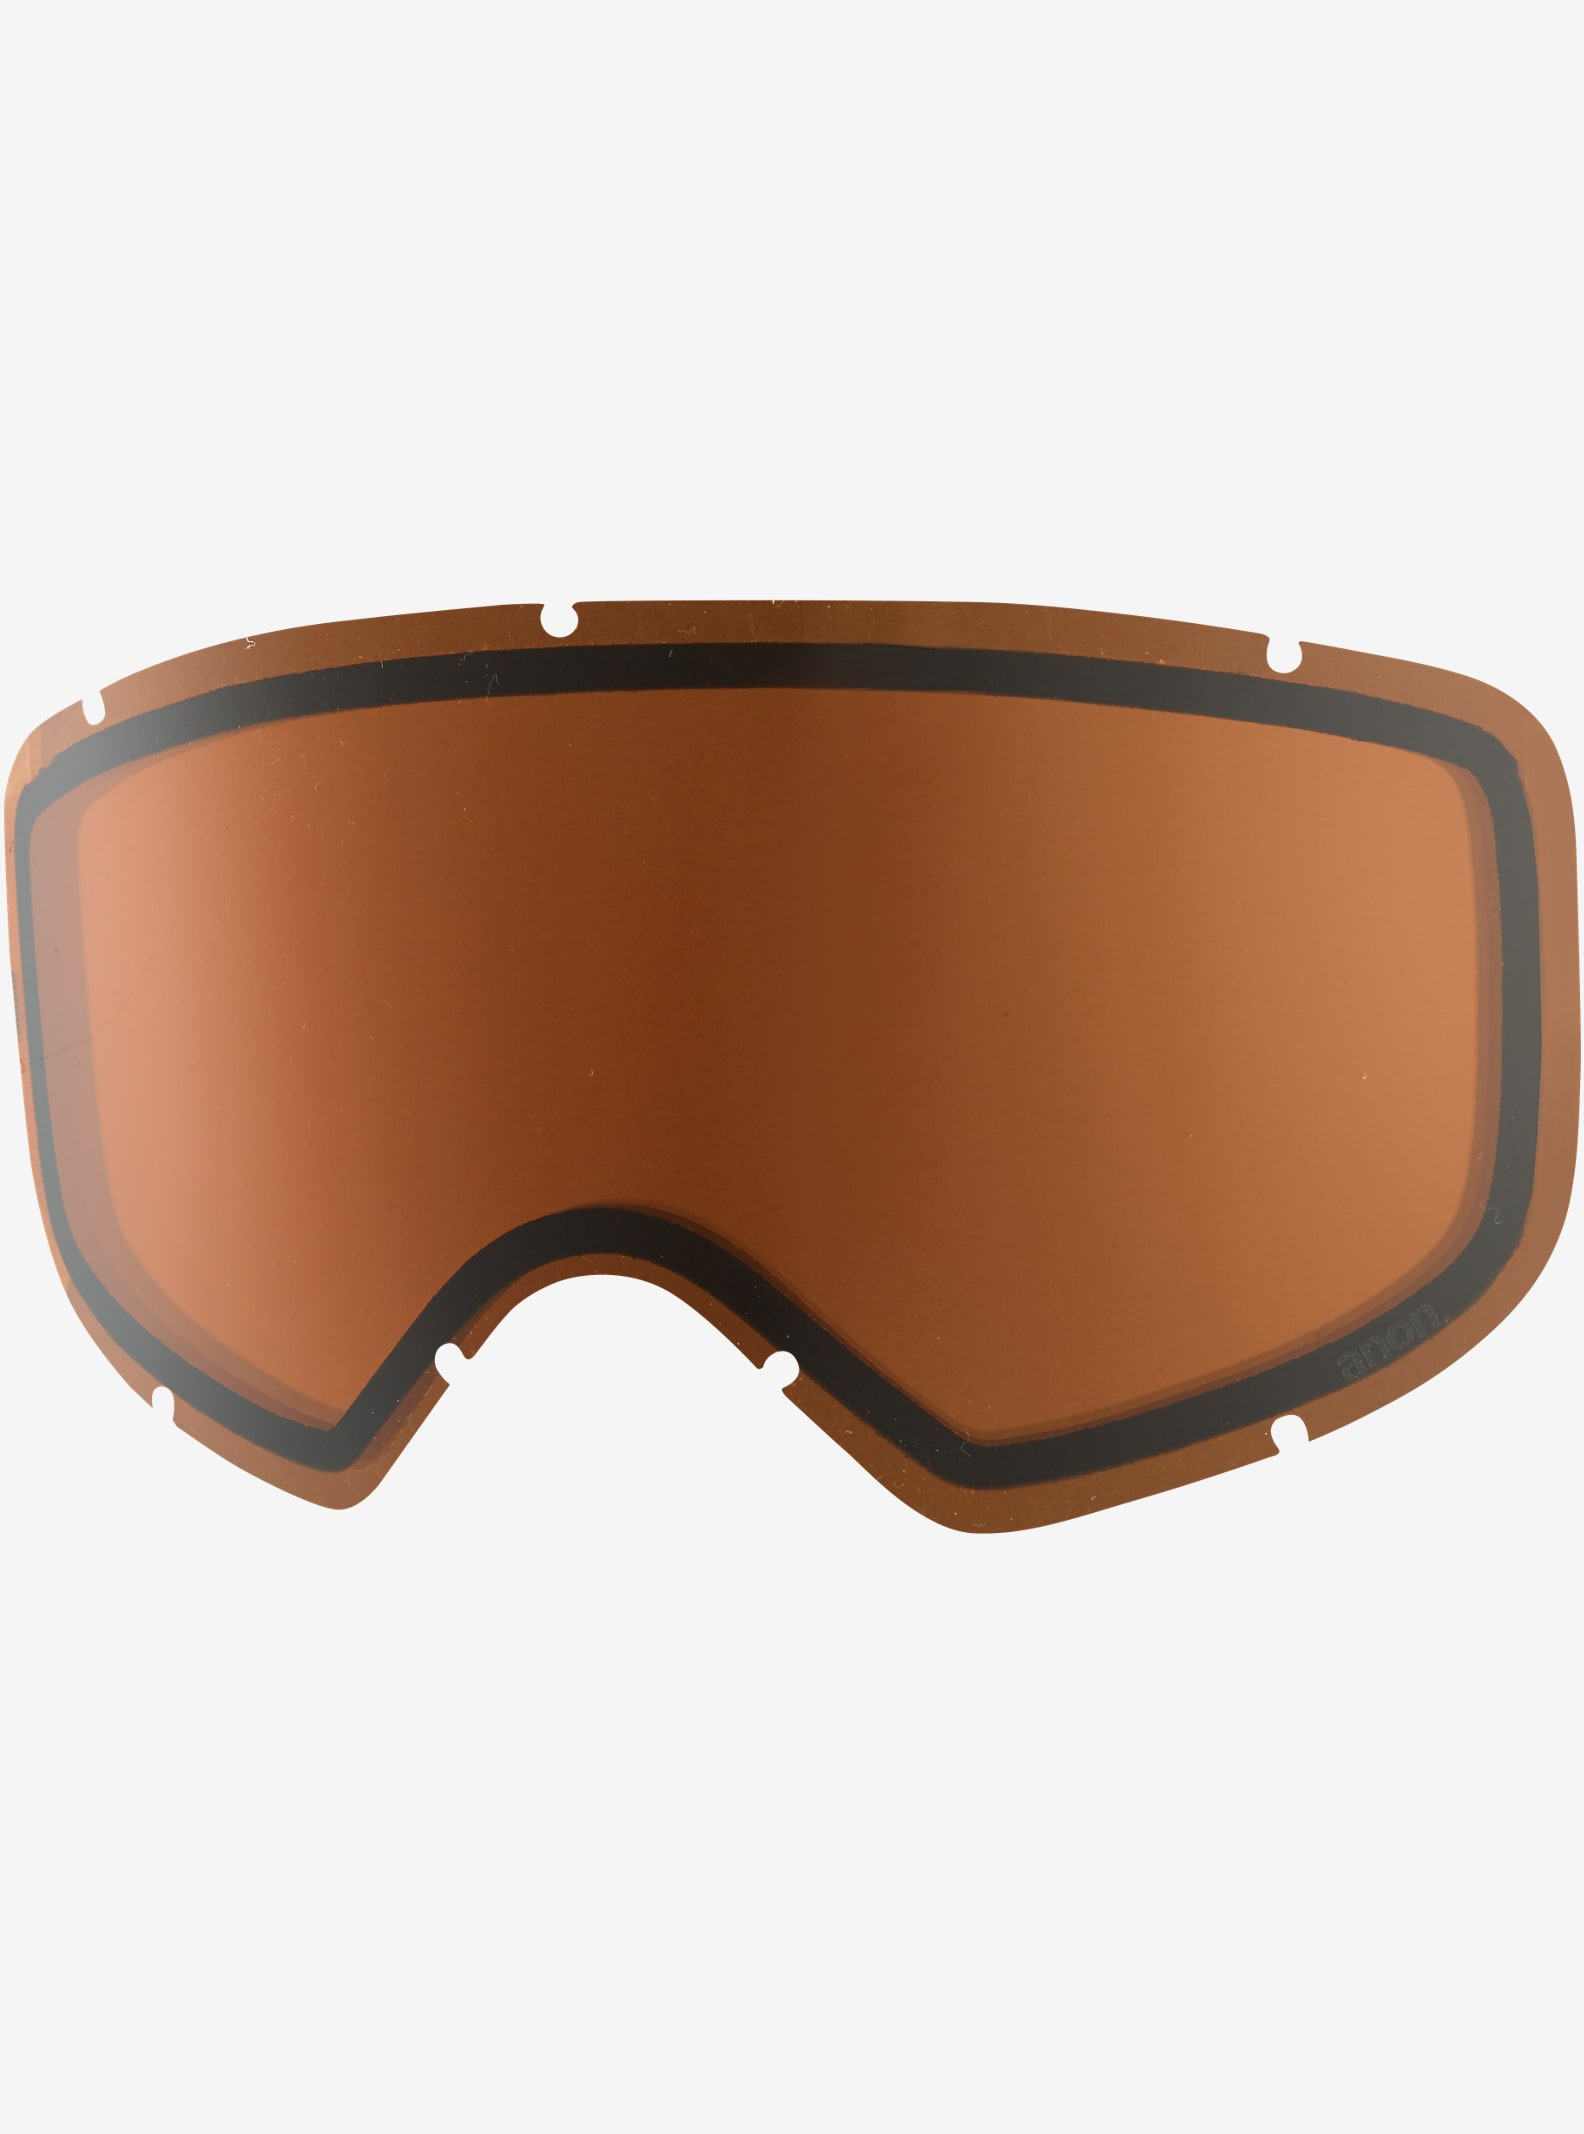 anon. Deringer Goggle Lens shown in Amber (55% VLT)